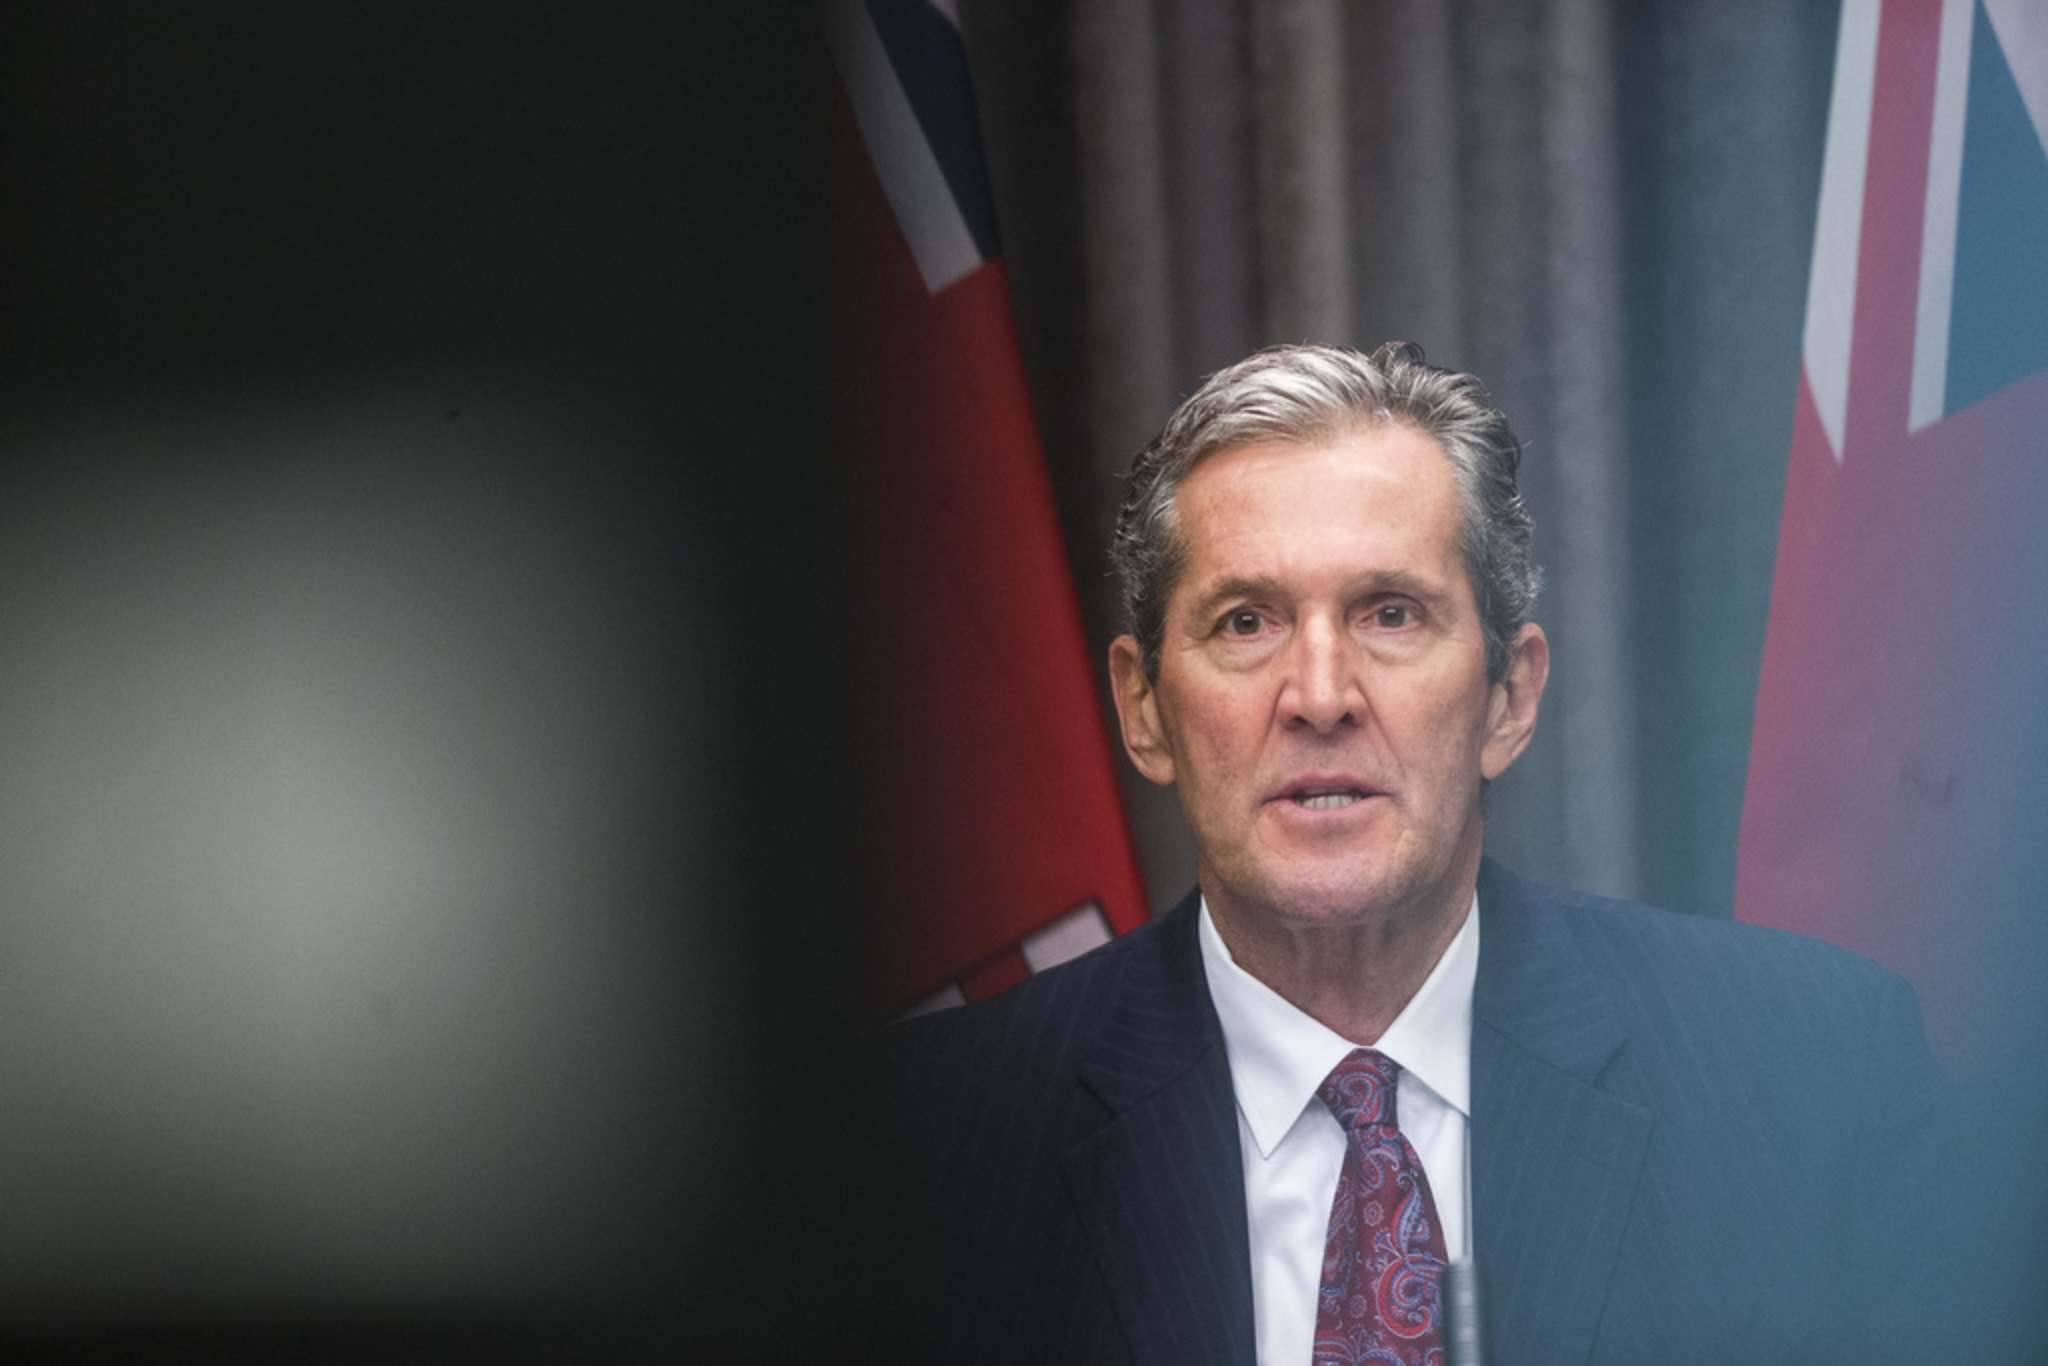 MIKAELA MACKENZIE / WINNIPEG FREE PRESS</p></p><p>Premier Brian Pallister's announcement that he plans to spend an extra $500 million on infrastructure projects over the next two years was designed to give the appearance his government is doing something to help kick-start the pandemic-weakened economy.</p>